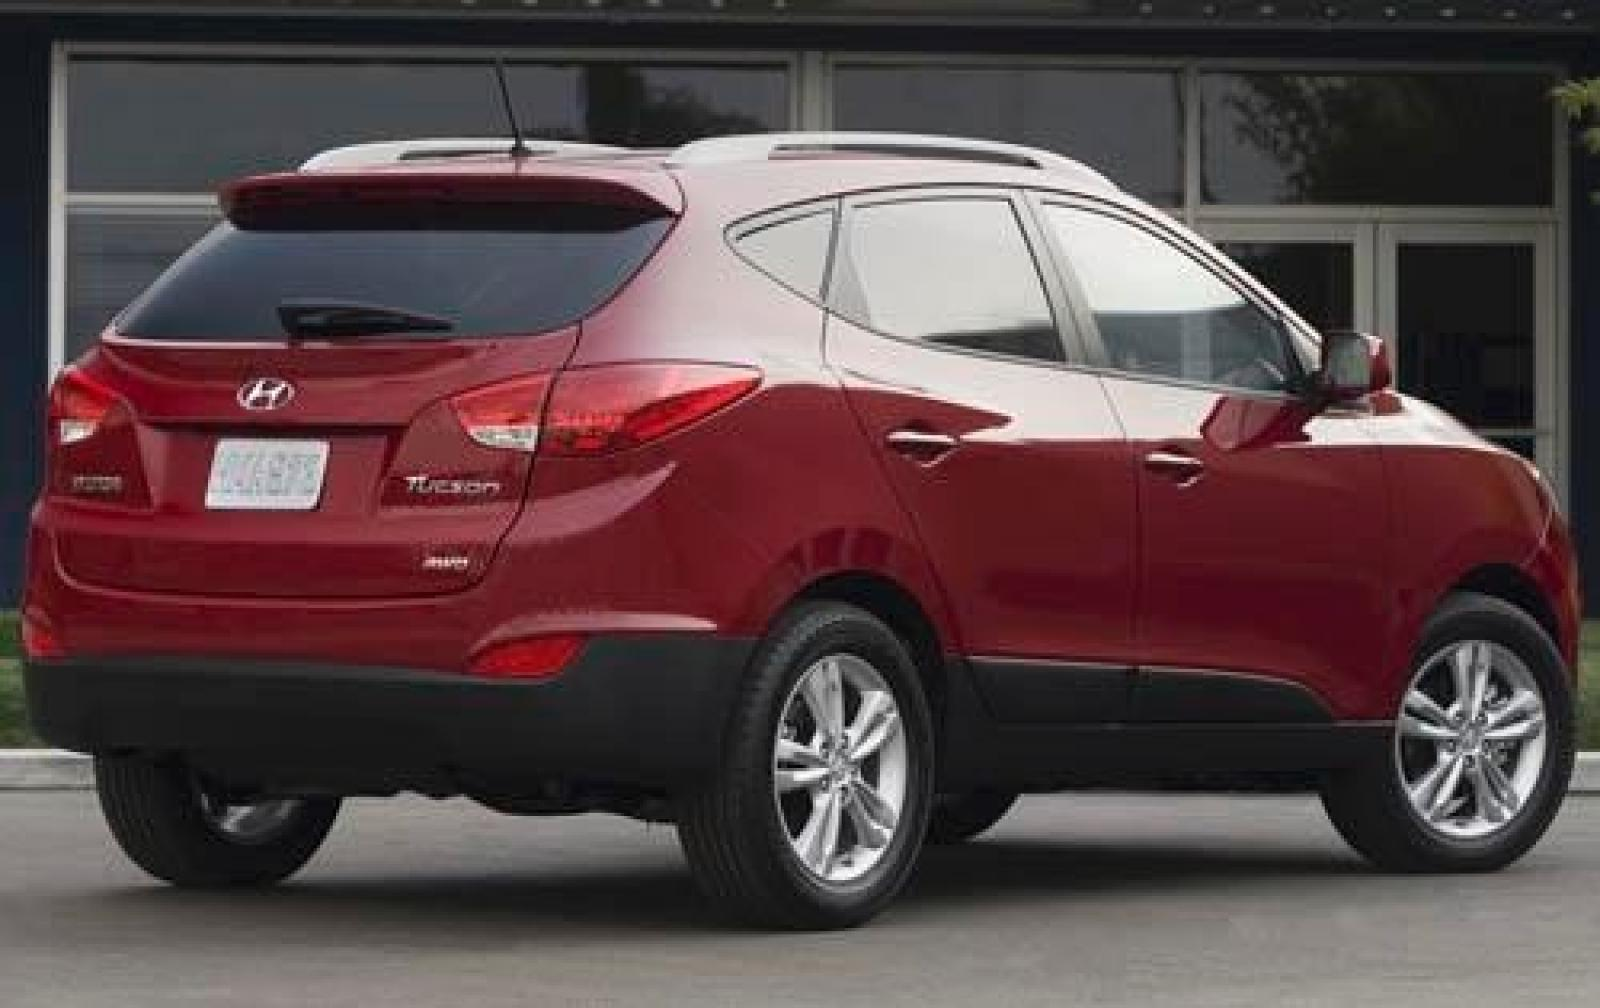 2011 hyundai tucson information and photos zombiedrive. Black Bedroom Furniture Sets. Home Design Ideas